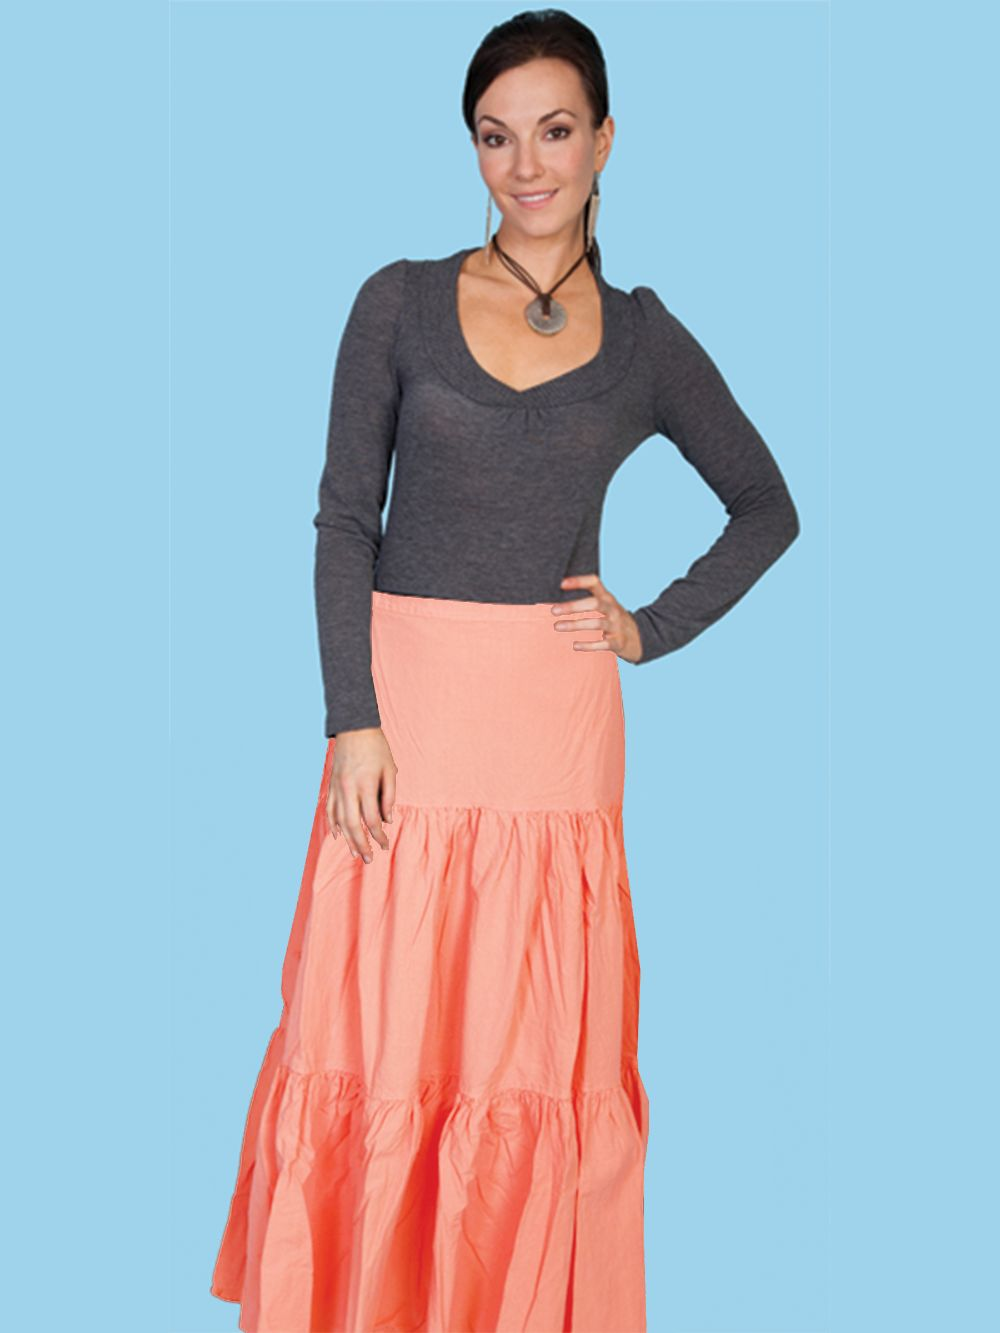 3 Tier Skirt - Psl-077 - Peach. (ships in 1-2 days). #F0_PSL-077_PCH